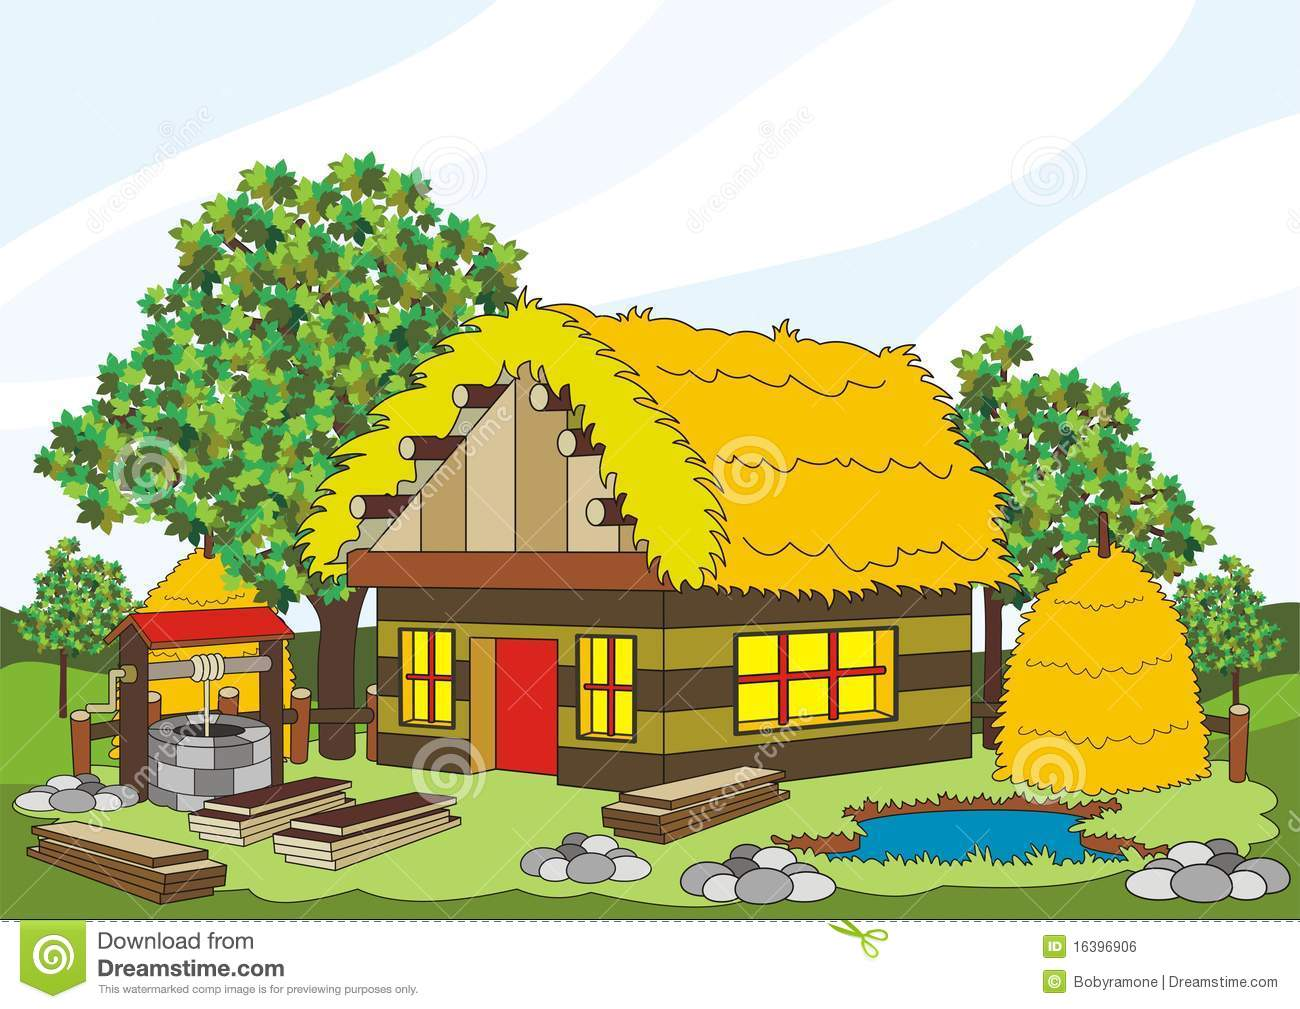 A village house clipart clipart free stock Village house clipart 7 » Clipart Station clipart free stock